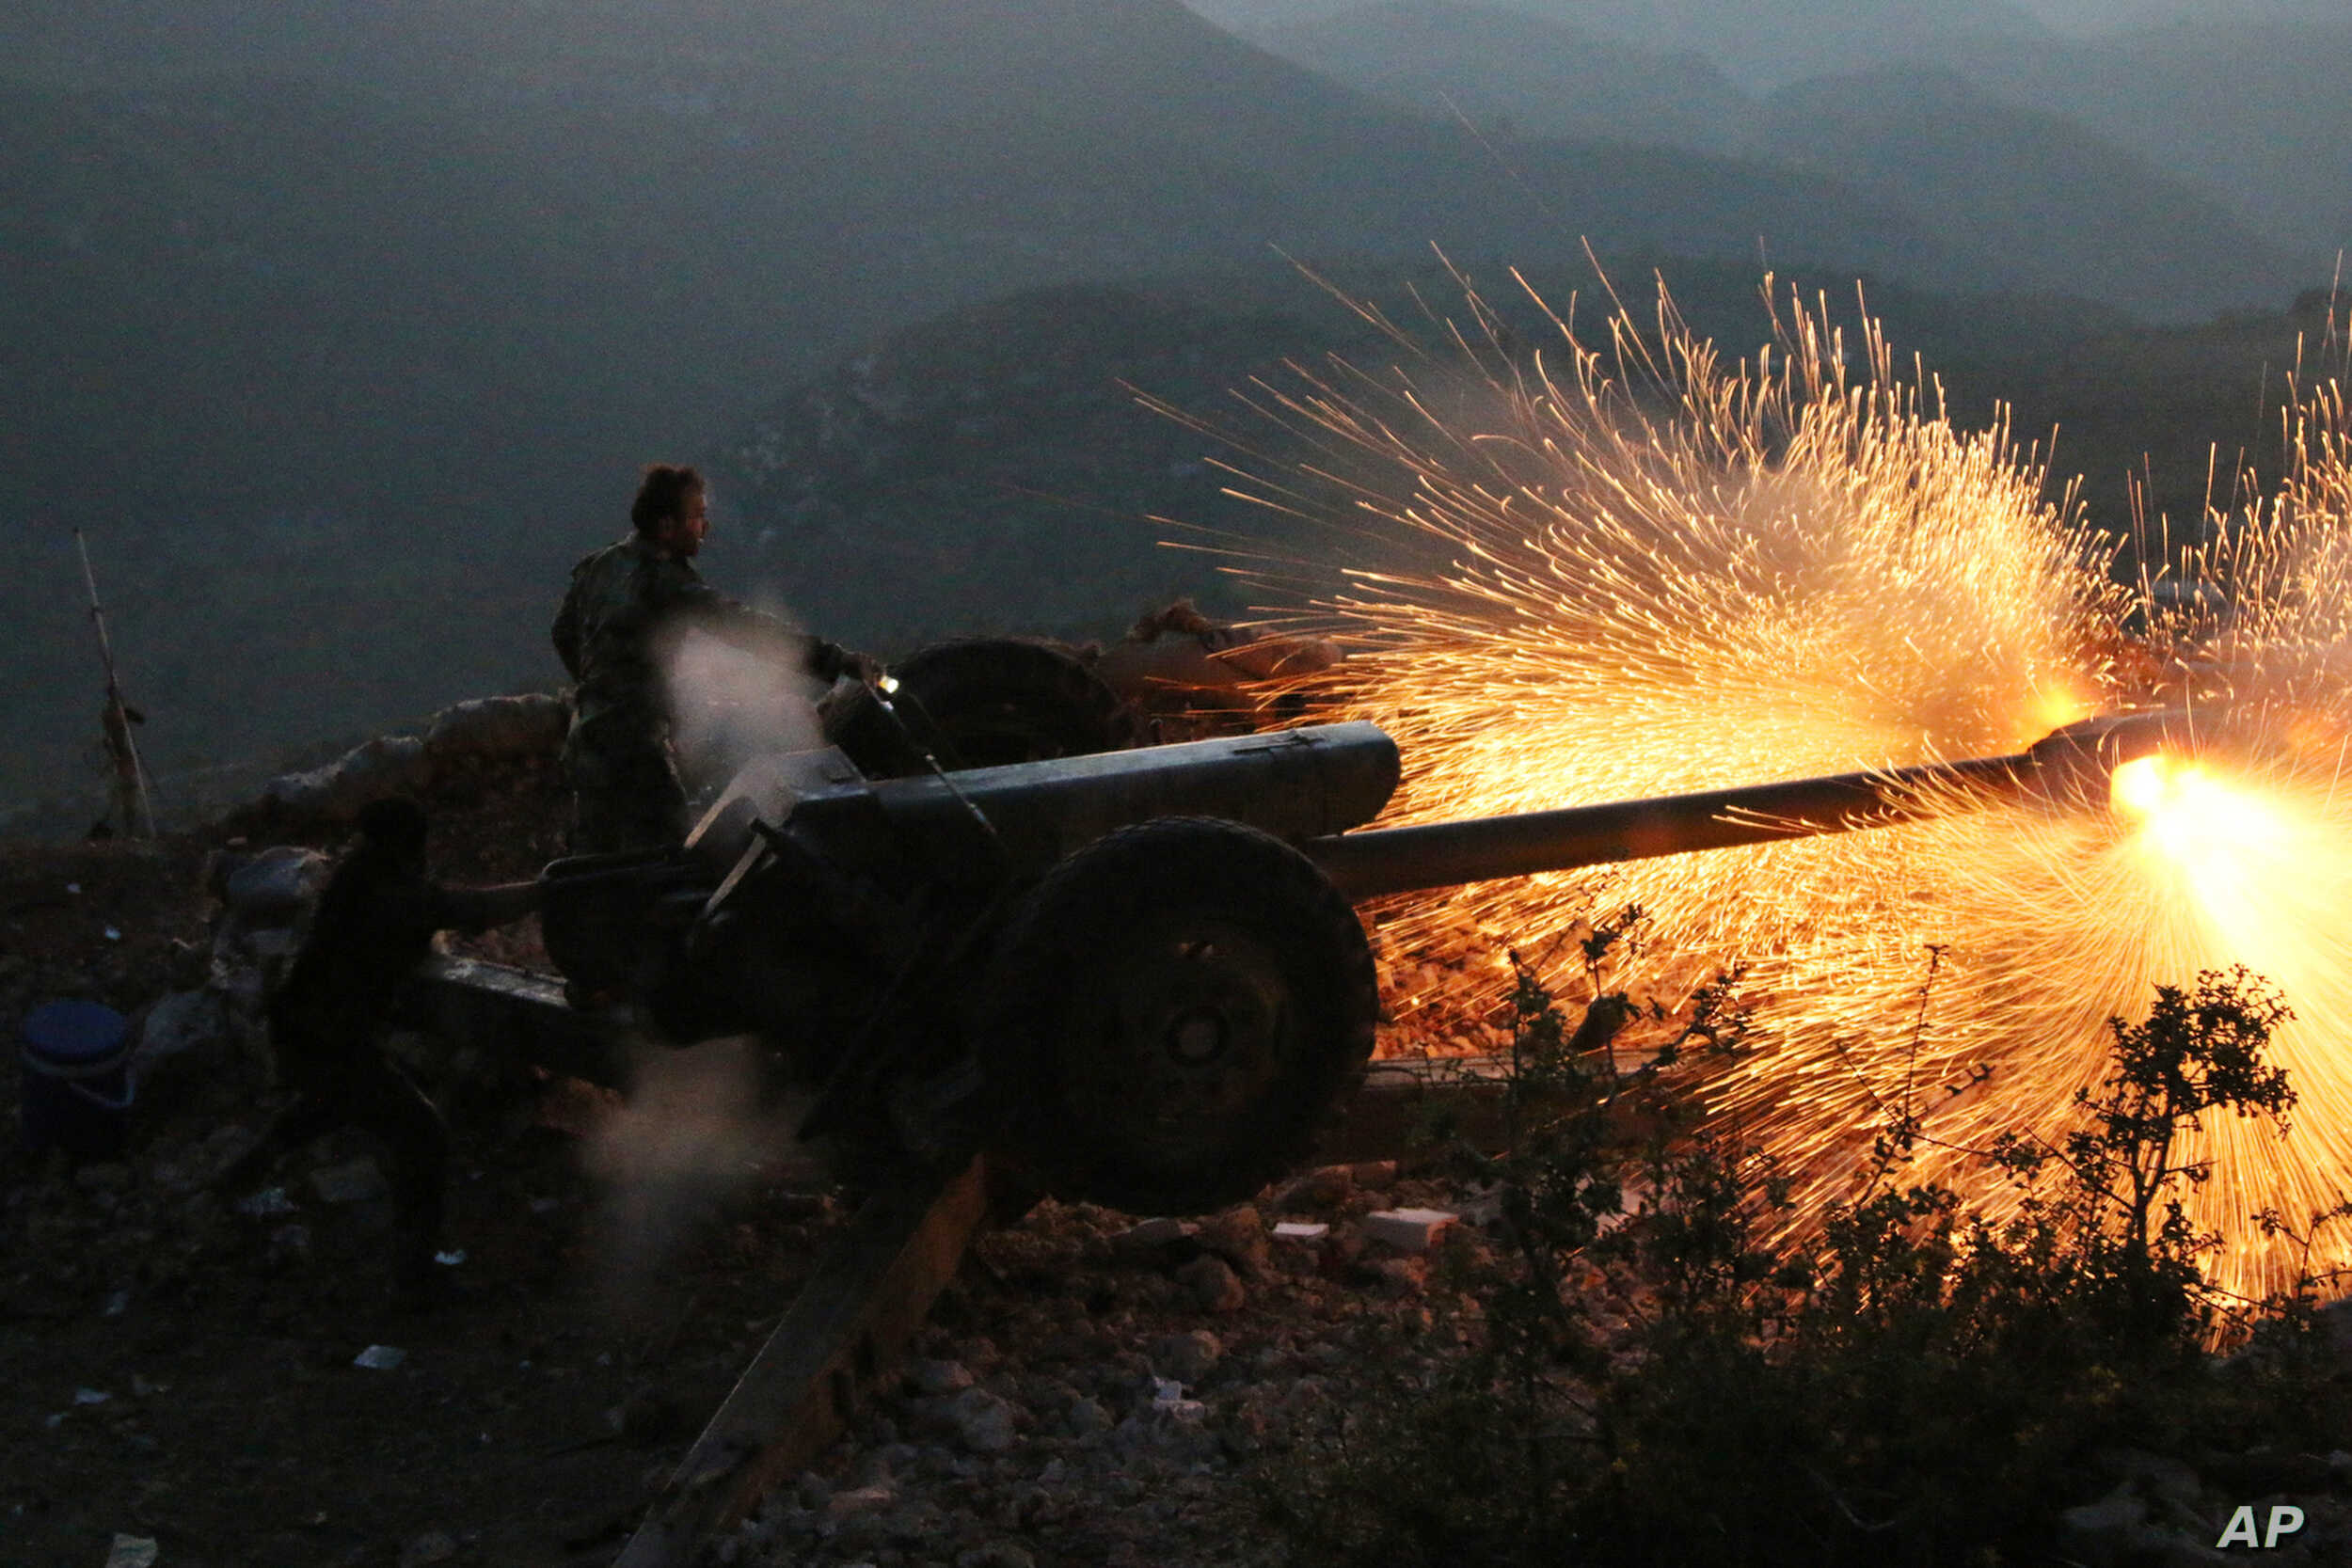 Syrian army personnel backed by Russian airstrikes fire cannon in Latakia province, near the border with Turkey, Oct. 10, 2015.